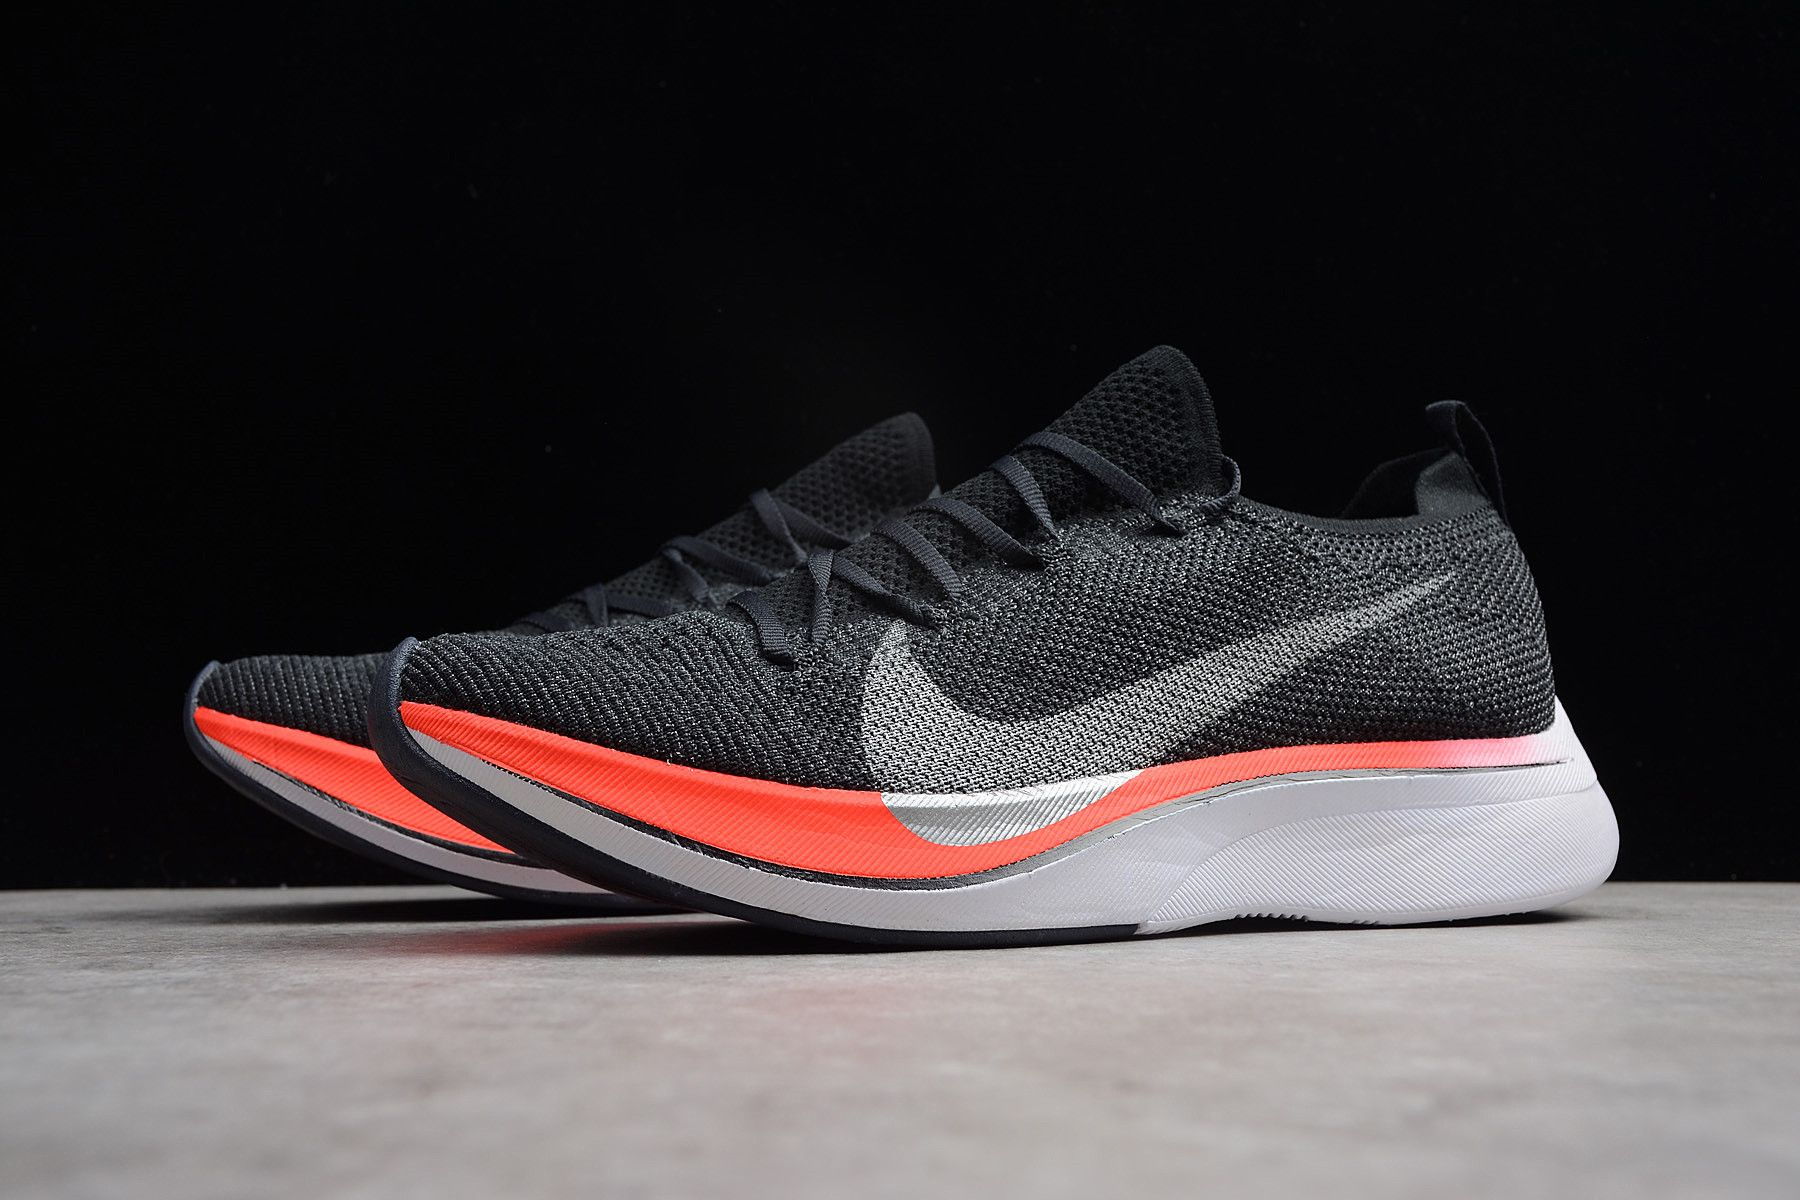 698239c549cf Nike Vaporfly 4% Flyknit Blue Fox Black-Bright Crimson AJ3857-400 in ...